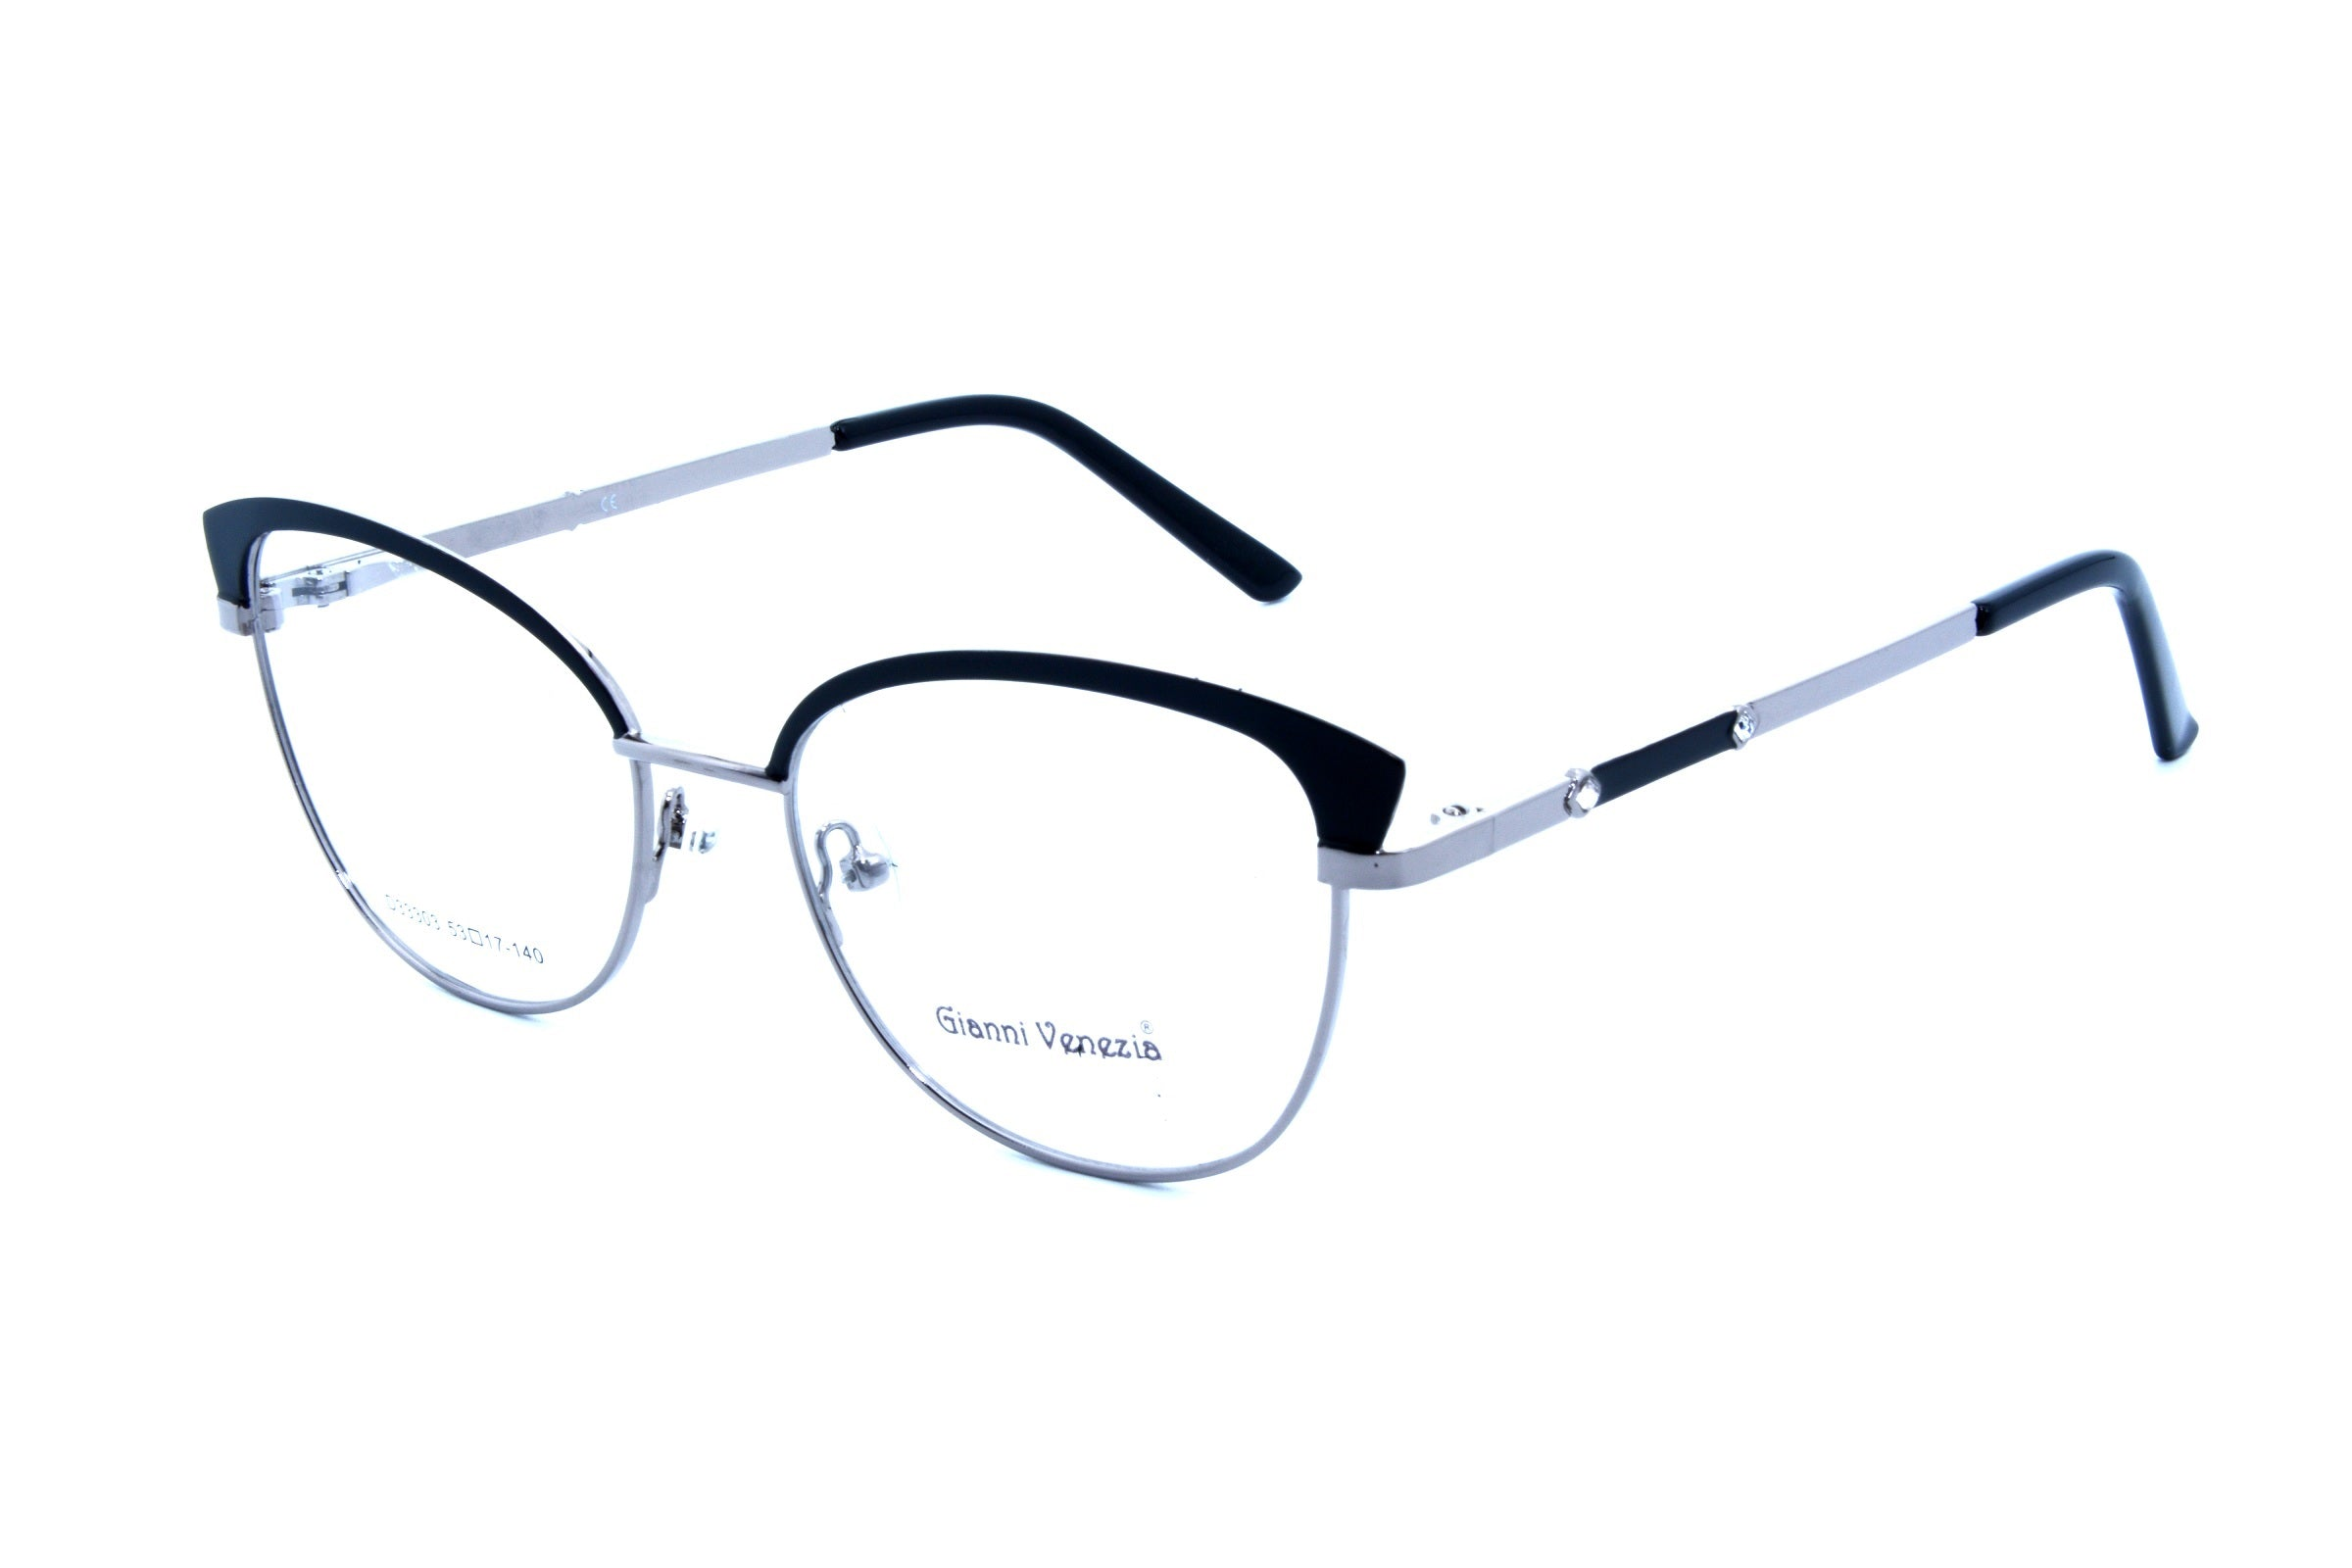 Gianni Venezia eyewear D33303, C1 - Optics Trading